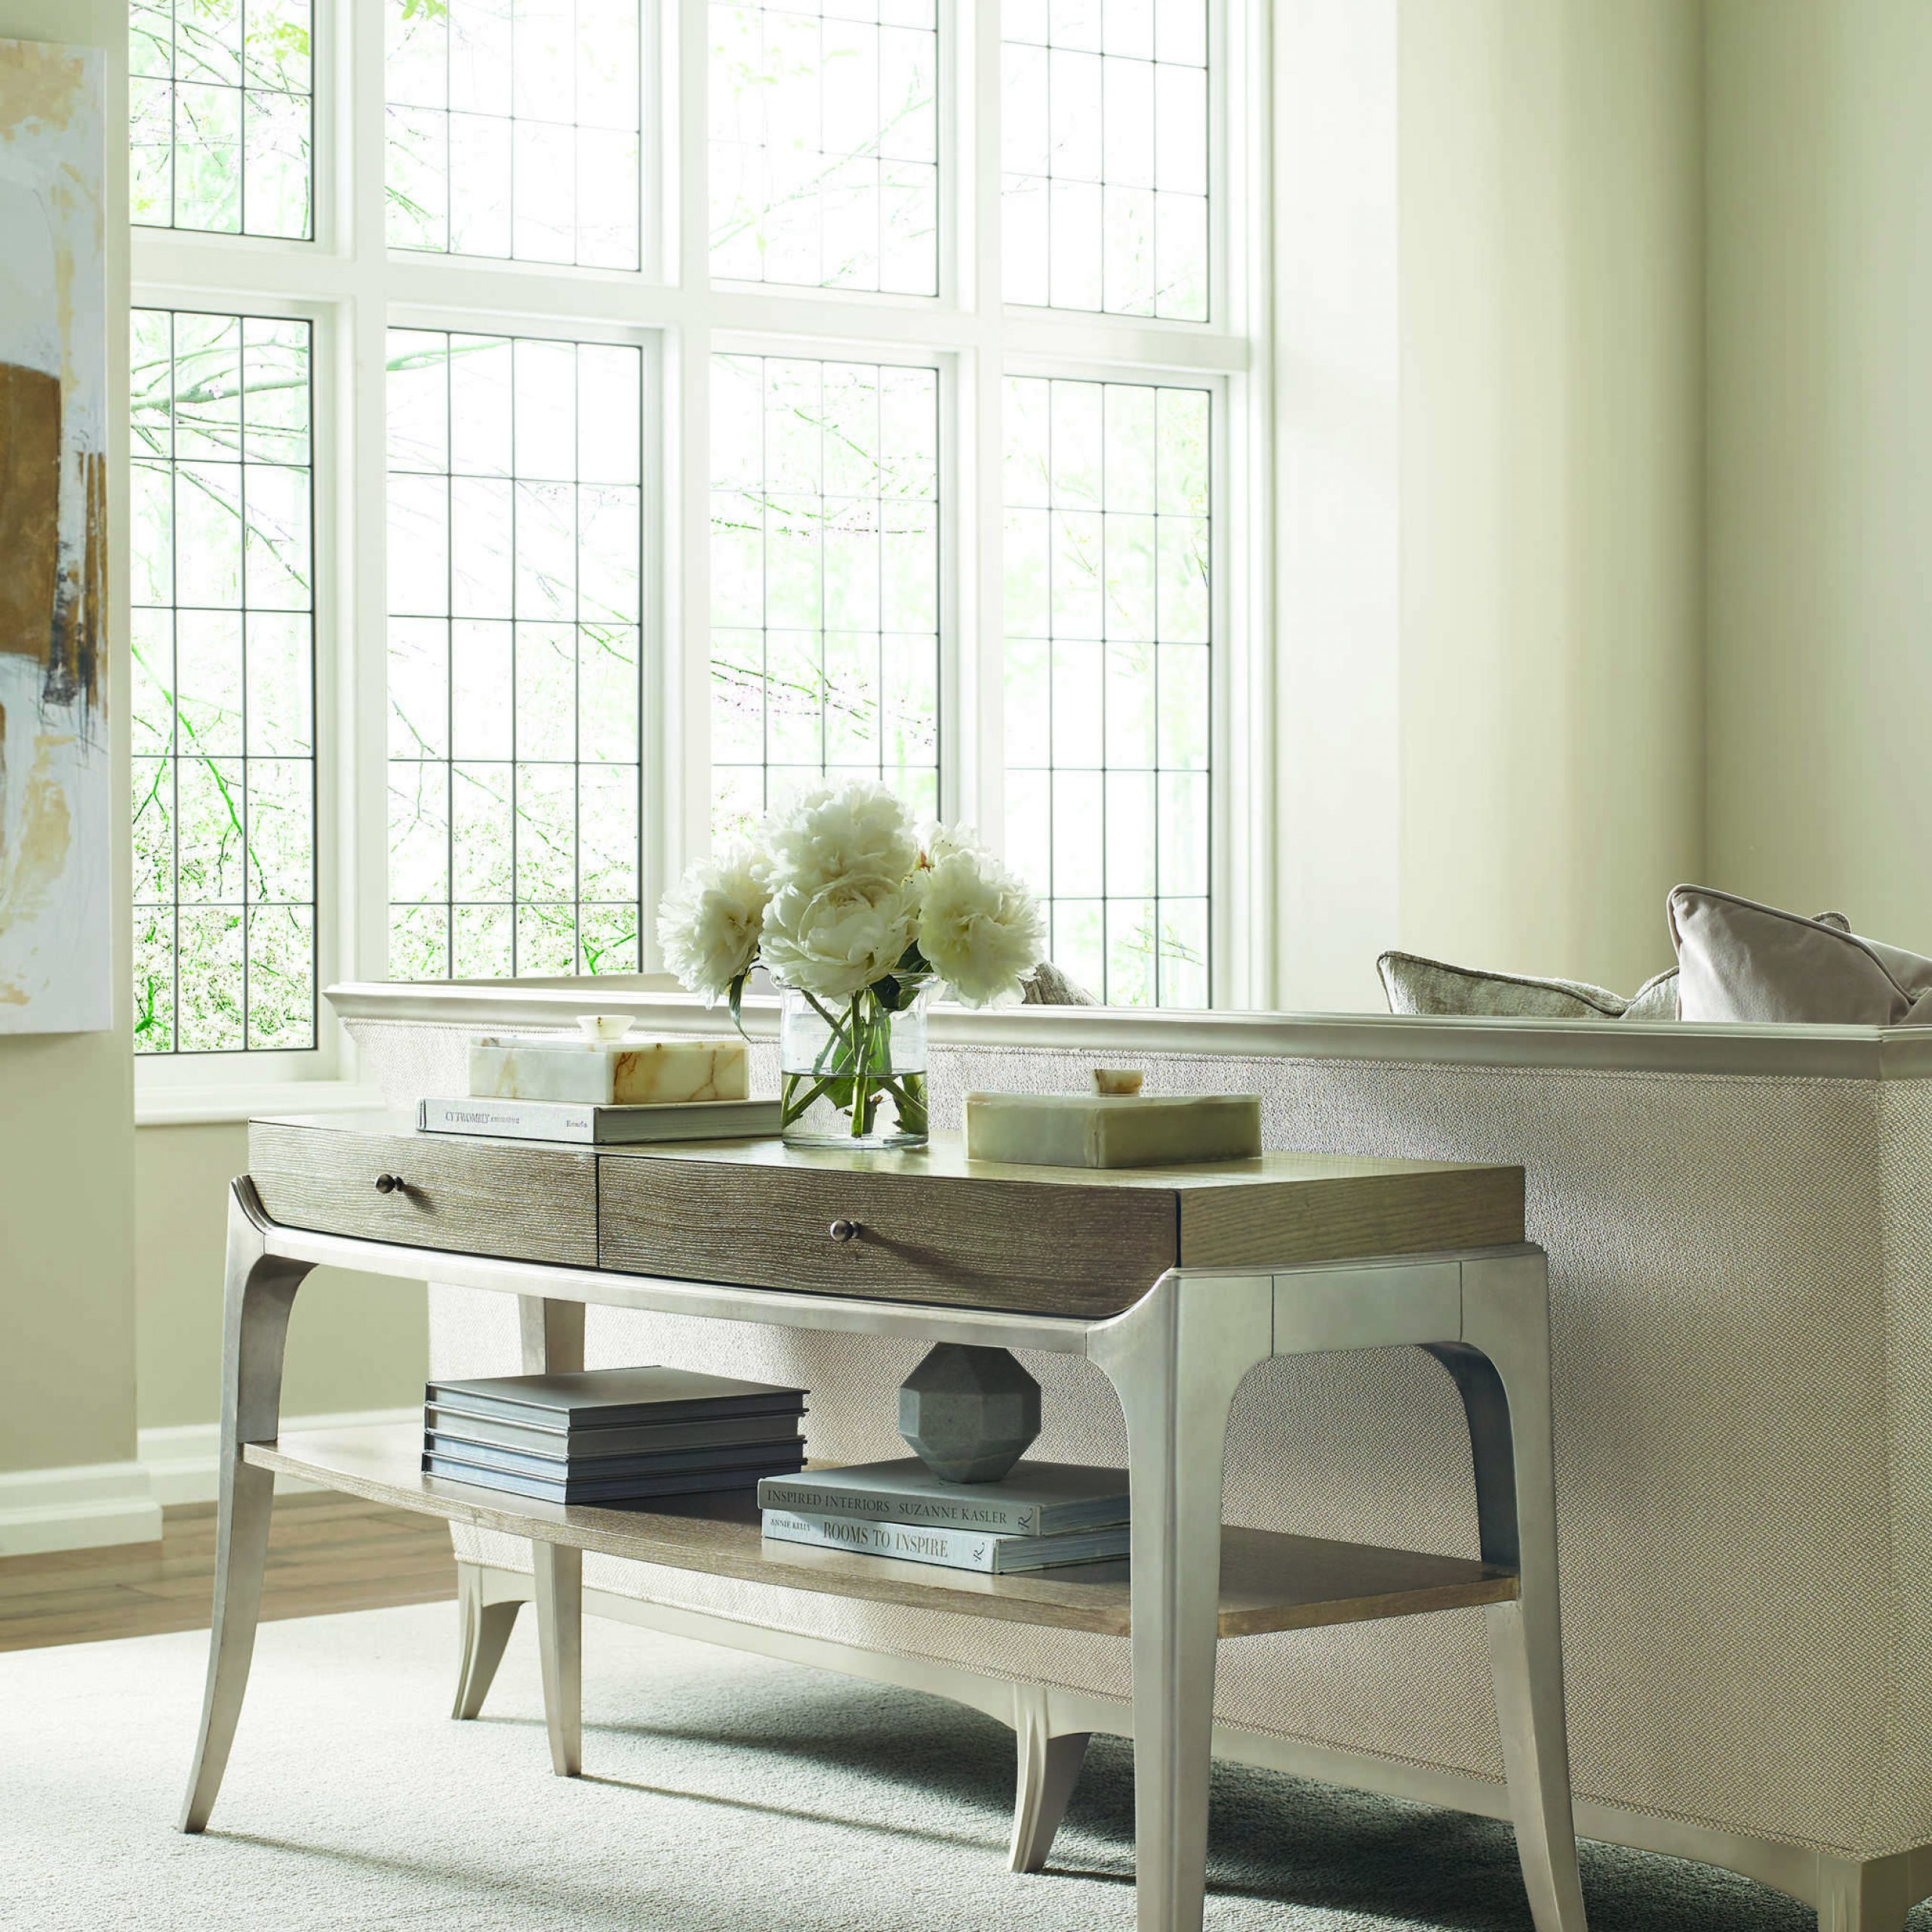 Caracole Compositions Avondale Ash / Soft Silver 60''w X 20''d Rectangular Console Table Intended For Most Up To Date Avondale Dining Tables (View 11 of 25)